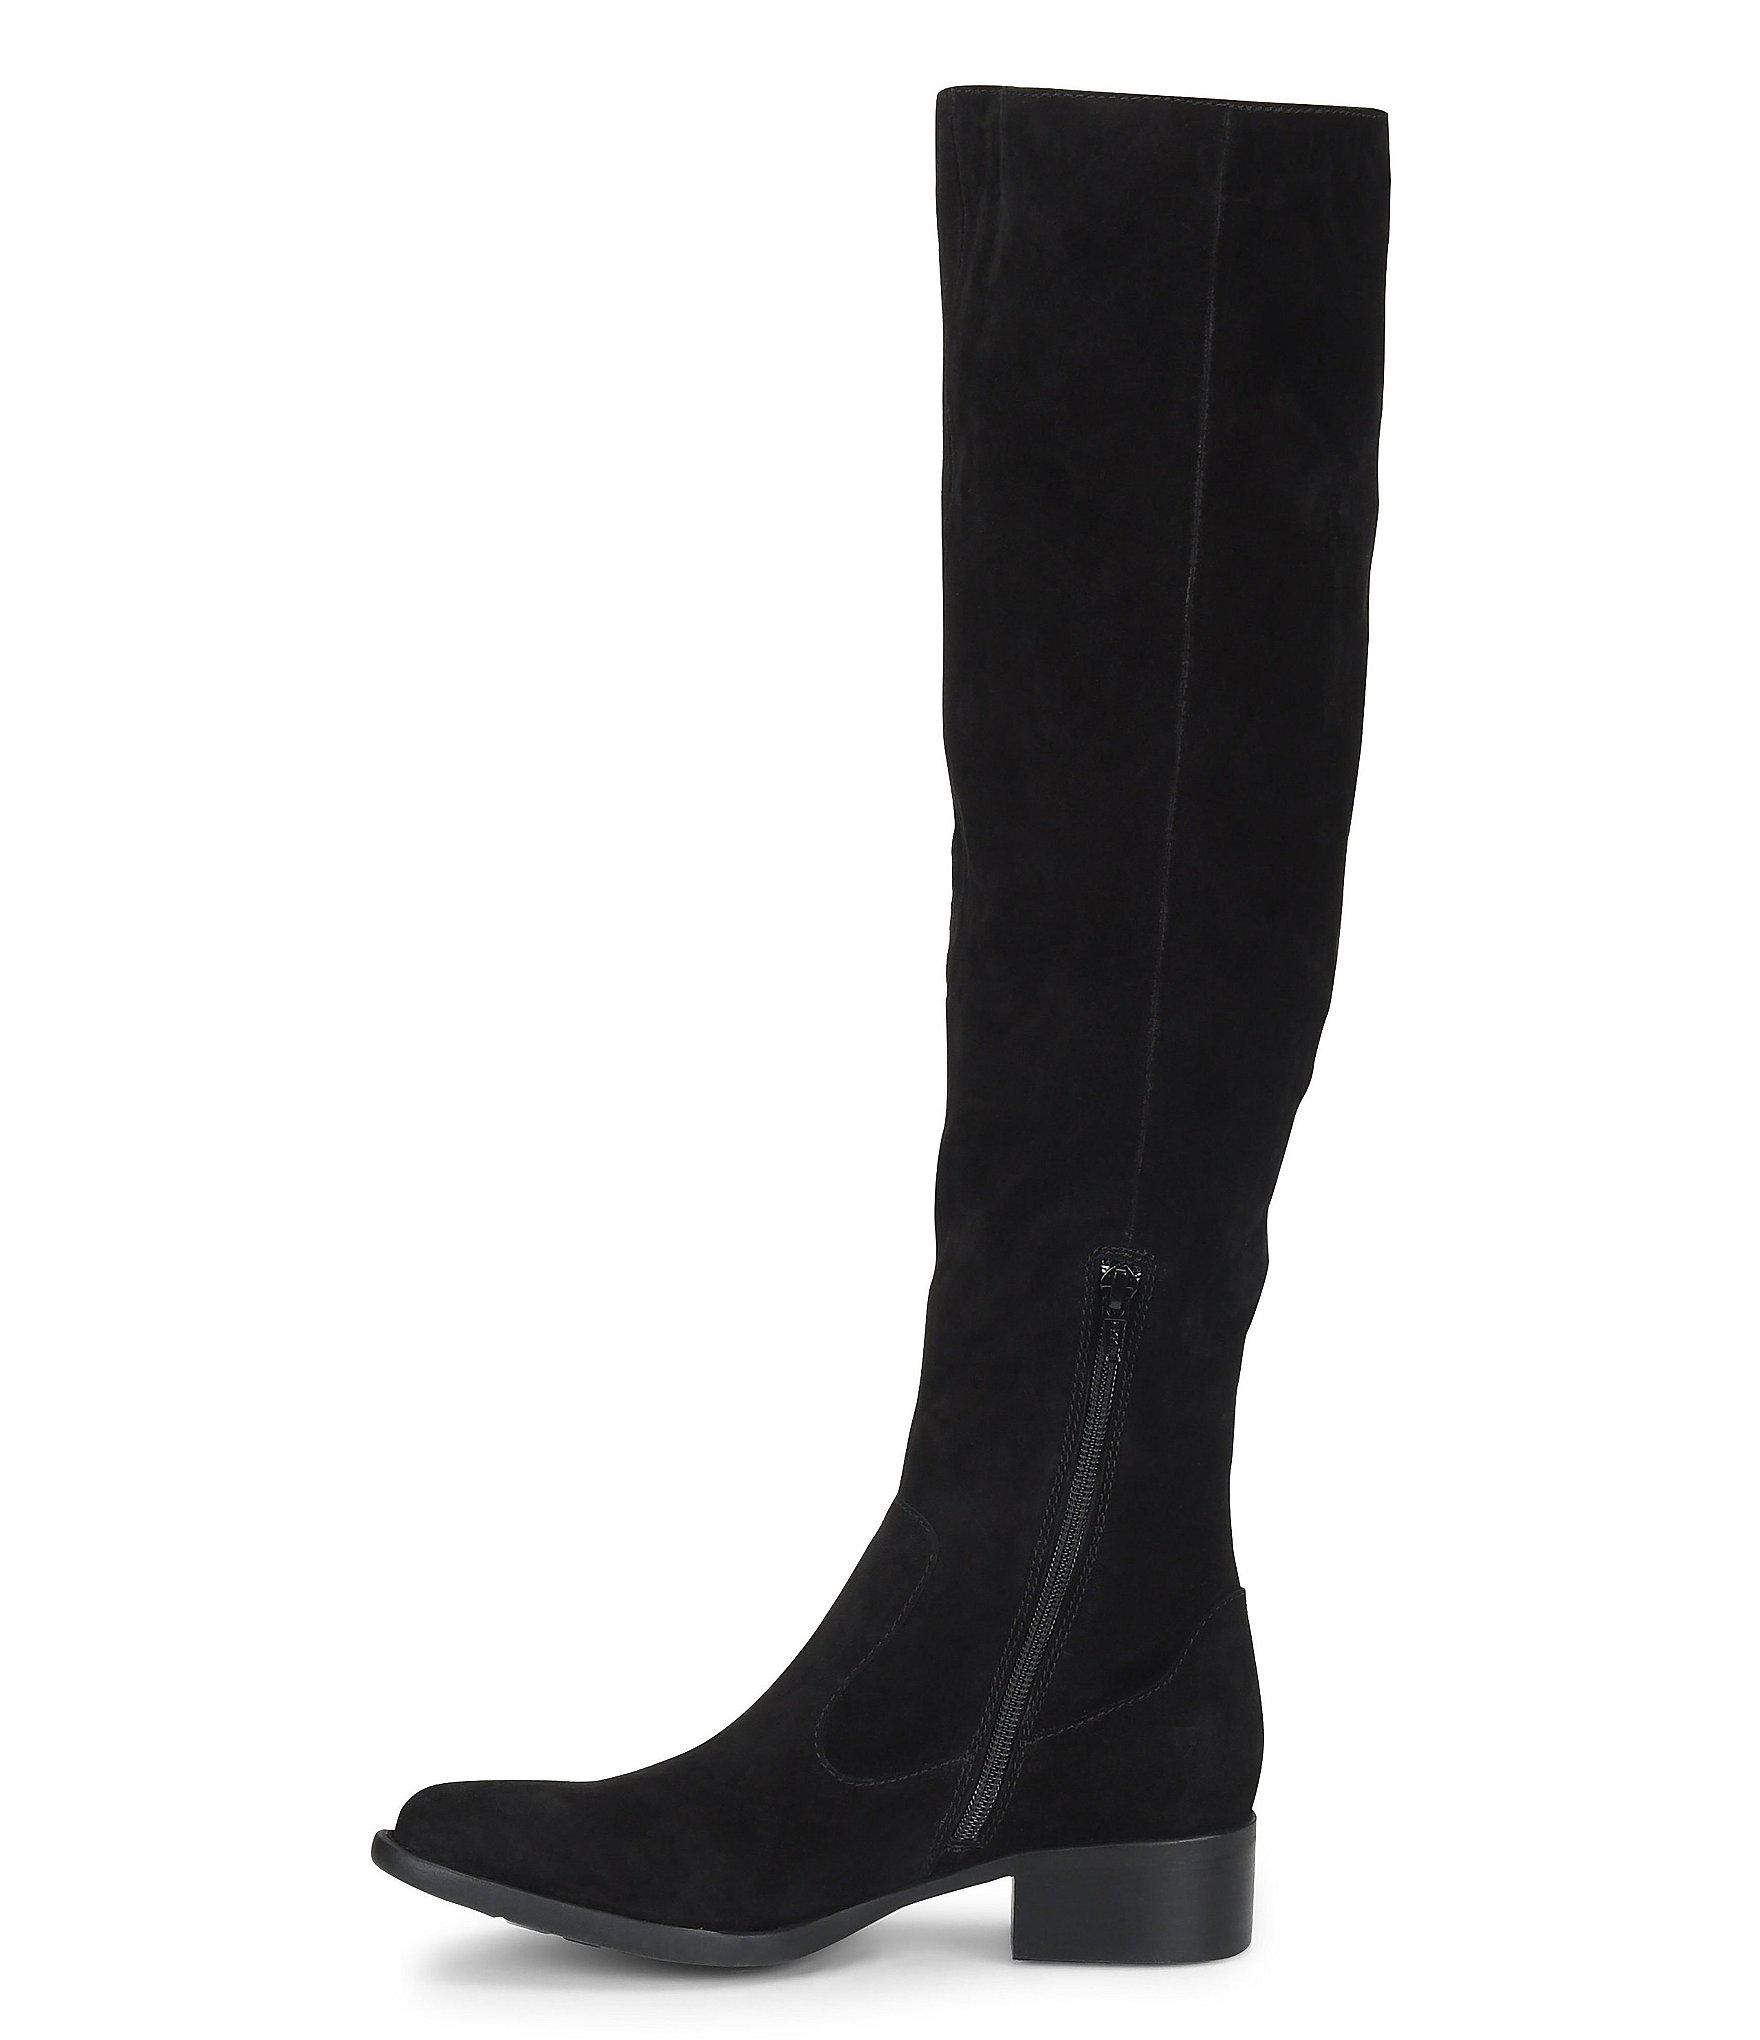 0db9e7262da Born - Black Cricket Tall Suede Block Heel Boots - Lyst. View fullscreen